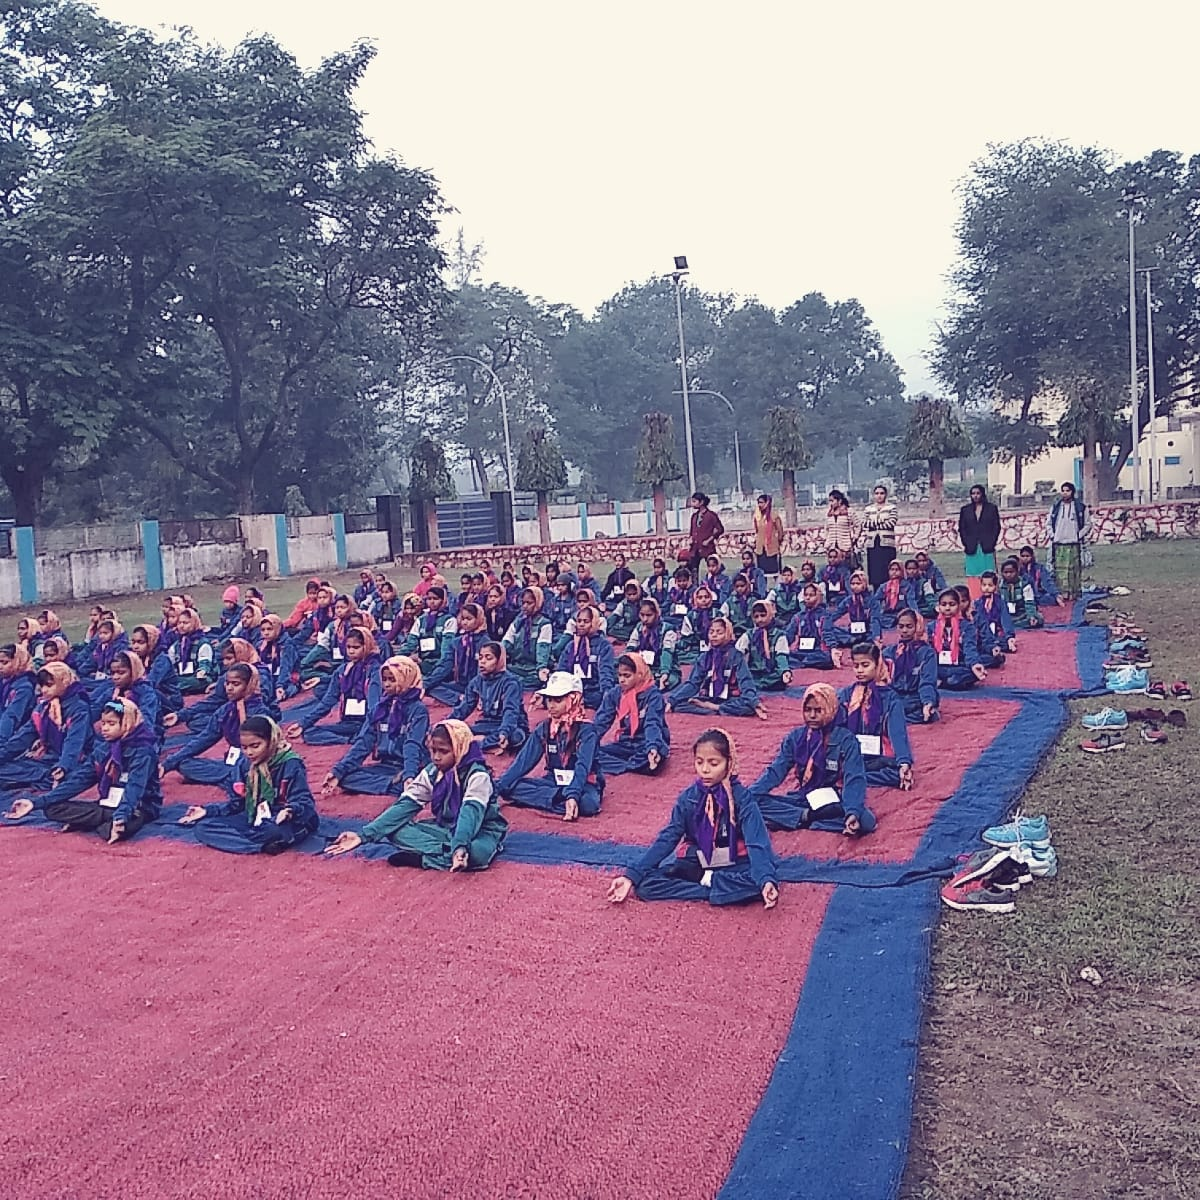 Celebration of Yoga Day at a school in Hyderabad